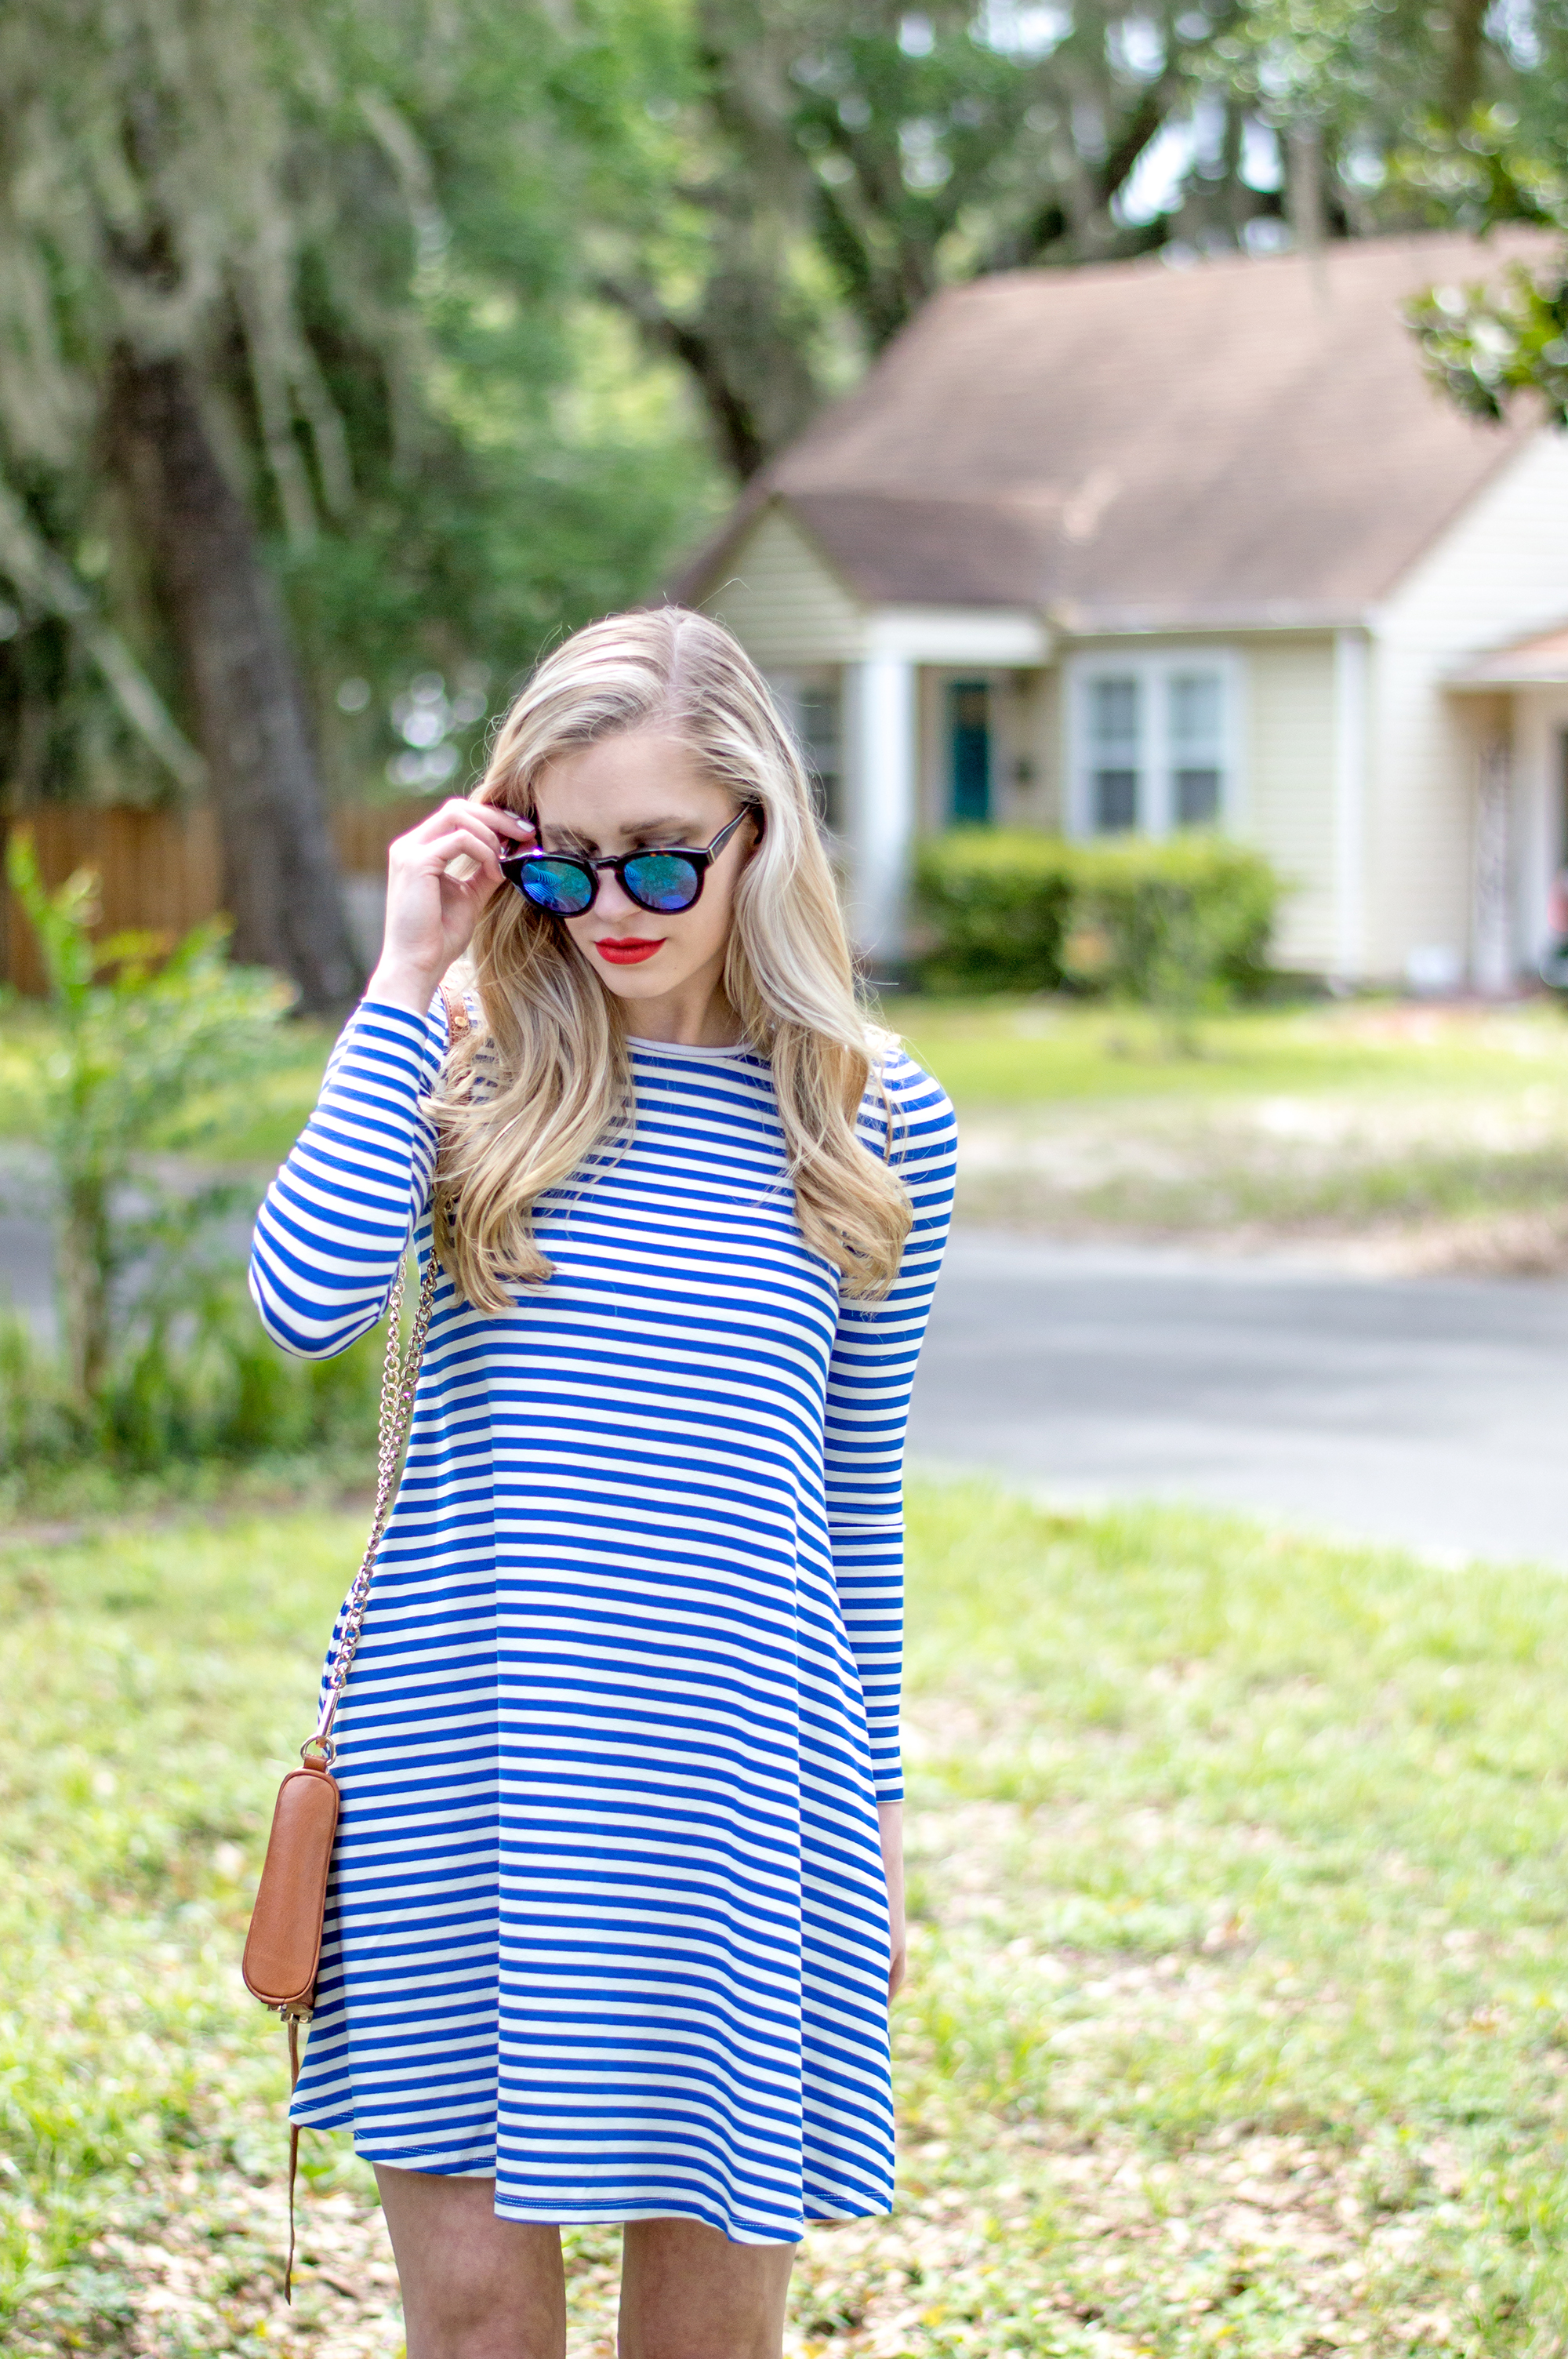 styelled-blog-fashion-style-beauty-lifestyle-blogger-florida-like-to-know-it-jane-hudson-stripes-striped-stripe-dress-sundress-memorial-day-diff-eyewear-sunglasses-rebecca-minkoff-02